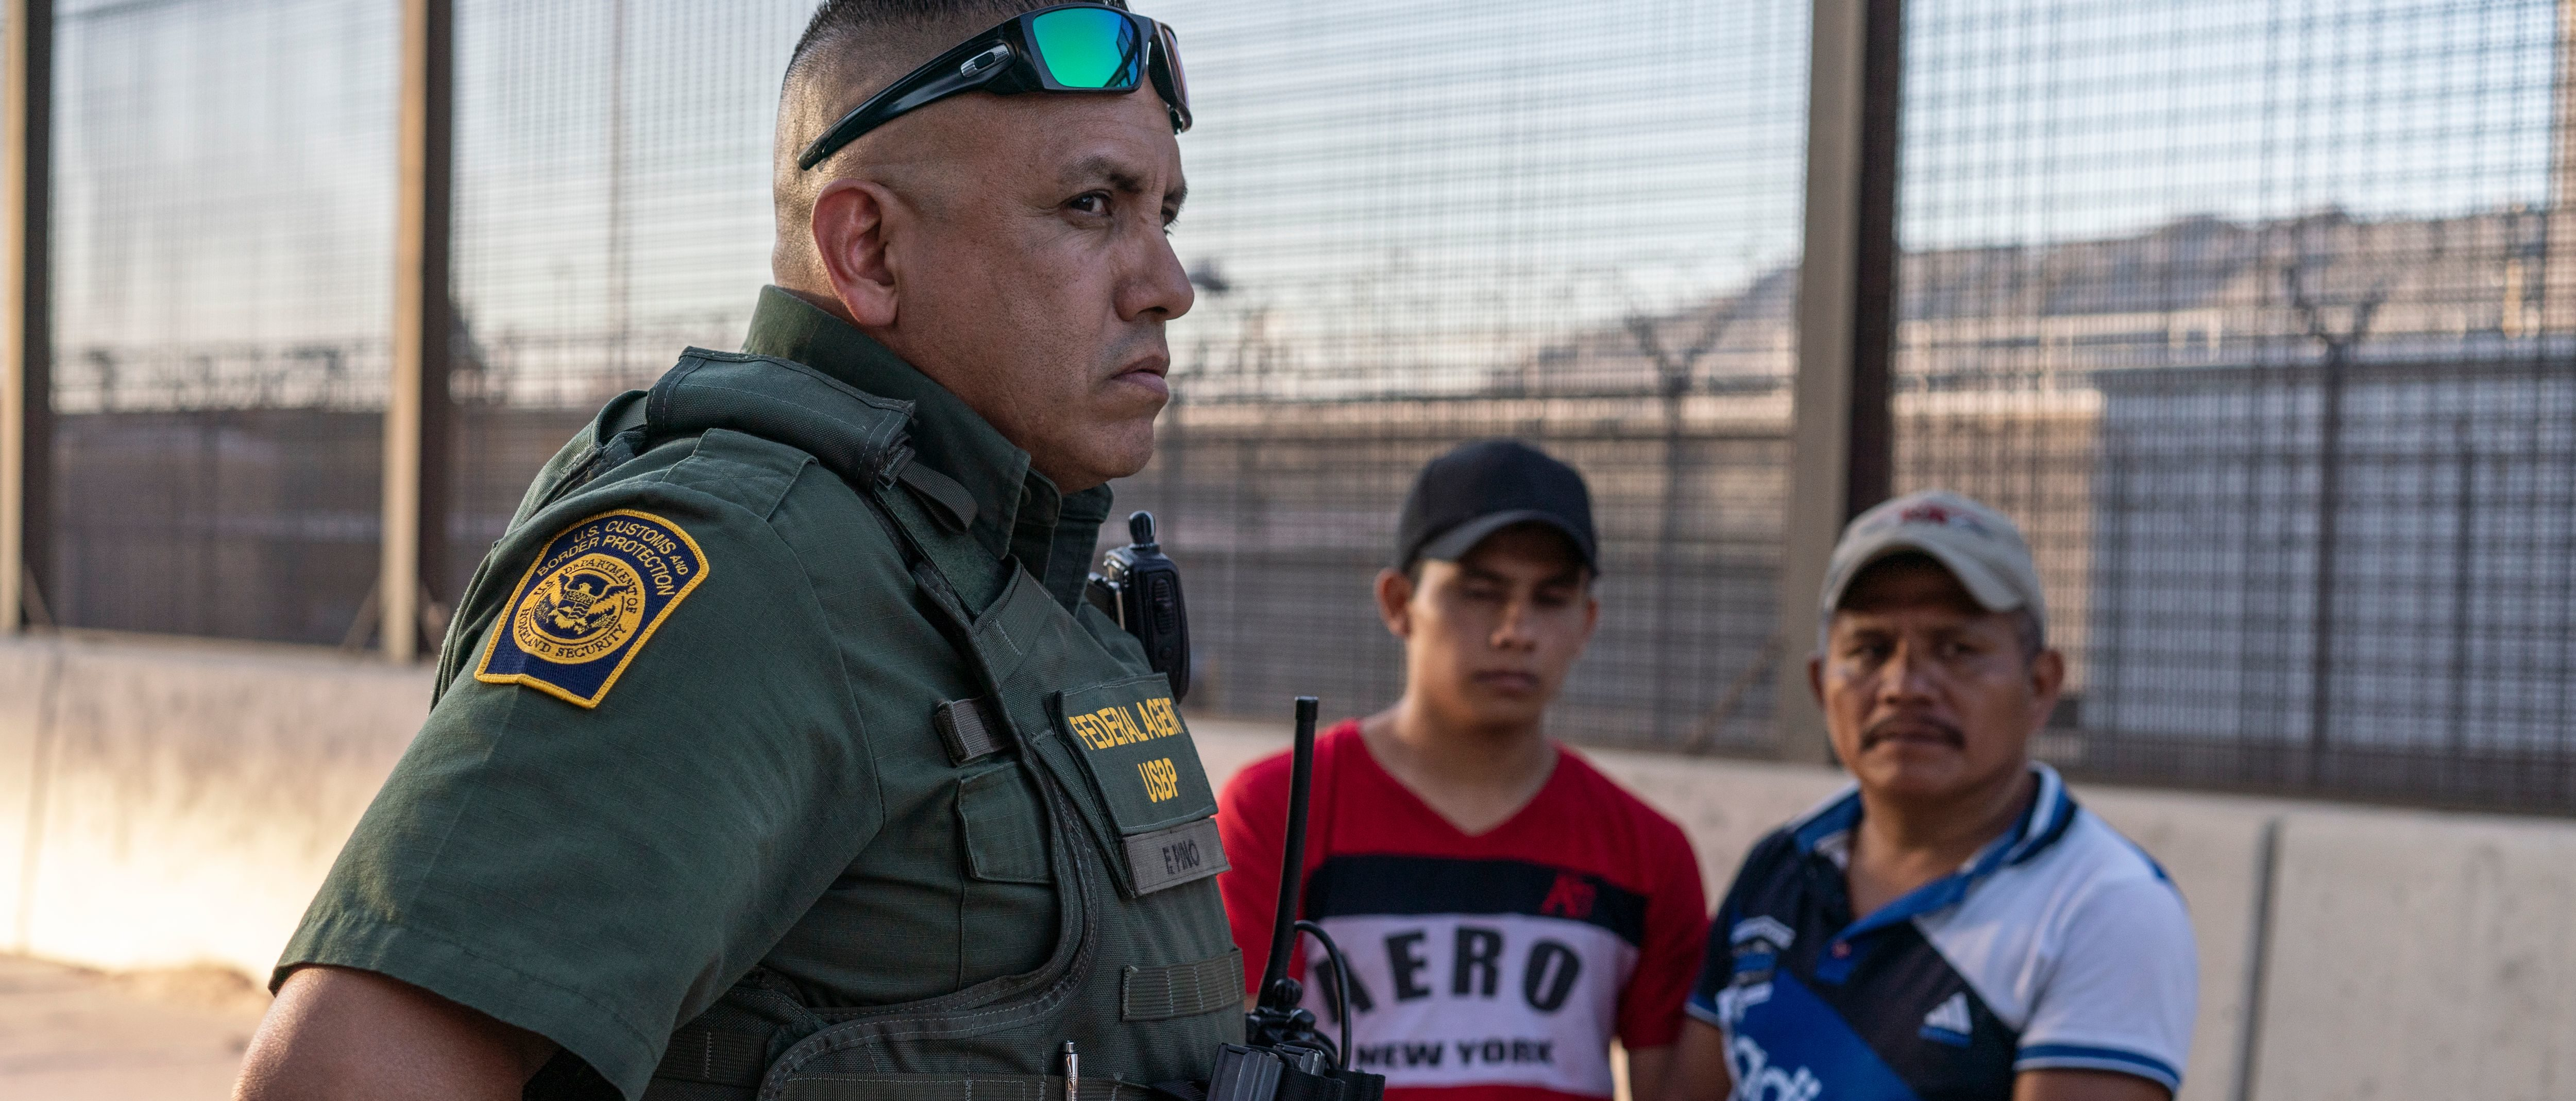 "Border Patrol agent Frank Pino (L) is pictured with two migrants who presented themselves to the Border Patrol in El Paso, Texas on May 16, 2019. - ""It's heart breaking, you know, I'm a father. I have two children. These guys out here, they are here with their kids,"" Pino said, ""I kind of put myself in their position, and you know, would I do the same thing they're doing? Escaping violence or fleeing their countries, it's a hard decision, but I took an oath as a Border Patrol agent, my main priority is protecting this border, protecting this fence, and making sure that we identify for the security of my community where I live in El Paso, Texas. That's important to me."" About 1,100 migrants from Central America and other countries are crossing into the El Paso border sector each day. Pino, public information officer for the Border Patrol, says that Border Patrol resources and personel are being stretched by the ongoing migrant crisis, and that the real targets of the Border Patrol are slipping through the cracks. (Photo by Paul Ratje / AFP) (Photo credit should read PAUL RATJE/AFP/Getty Images)"